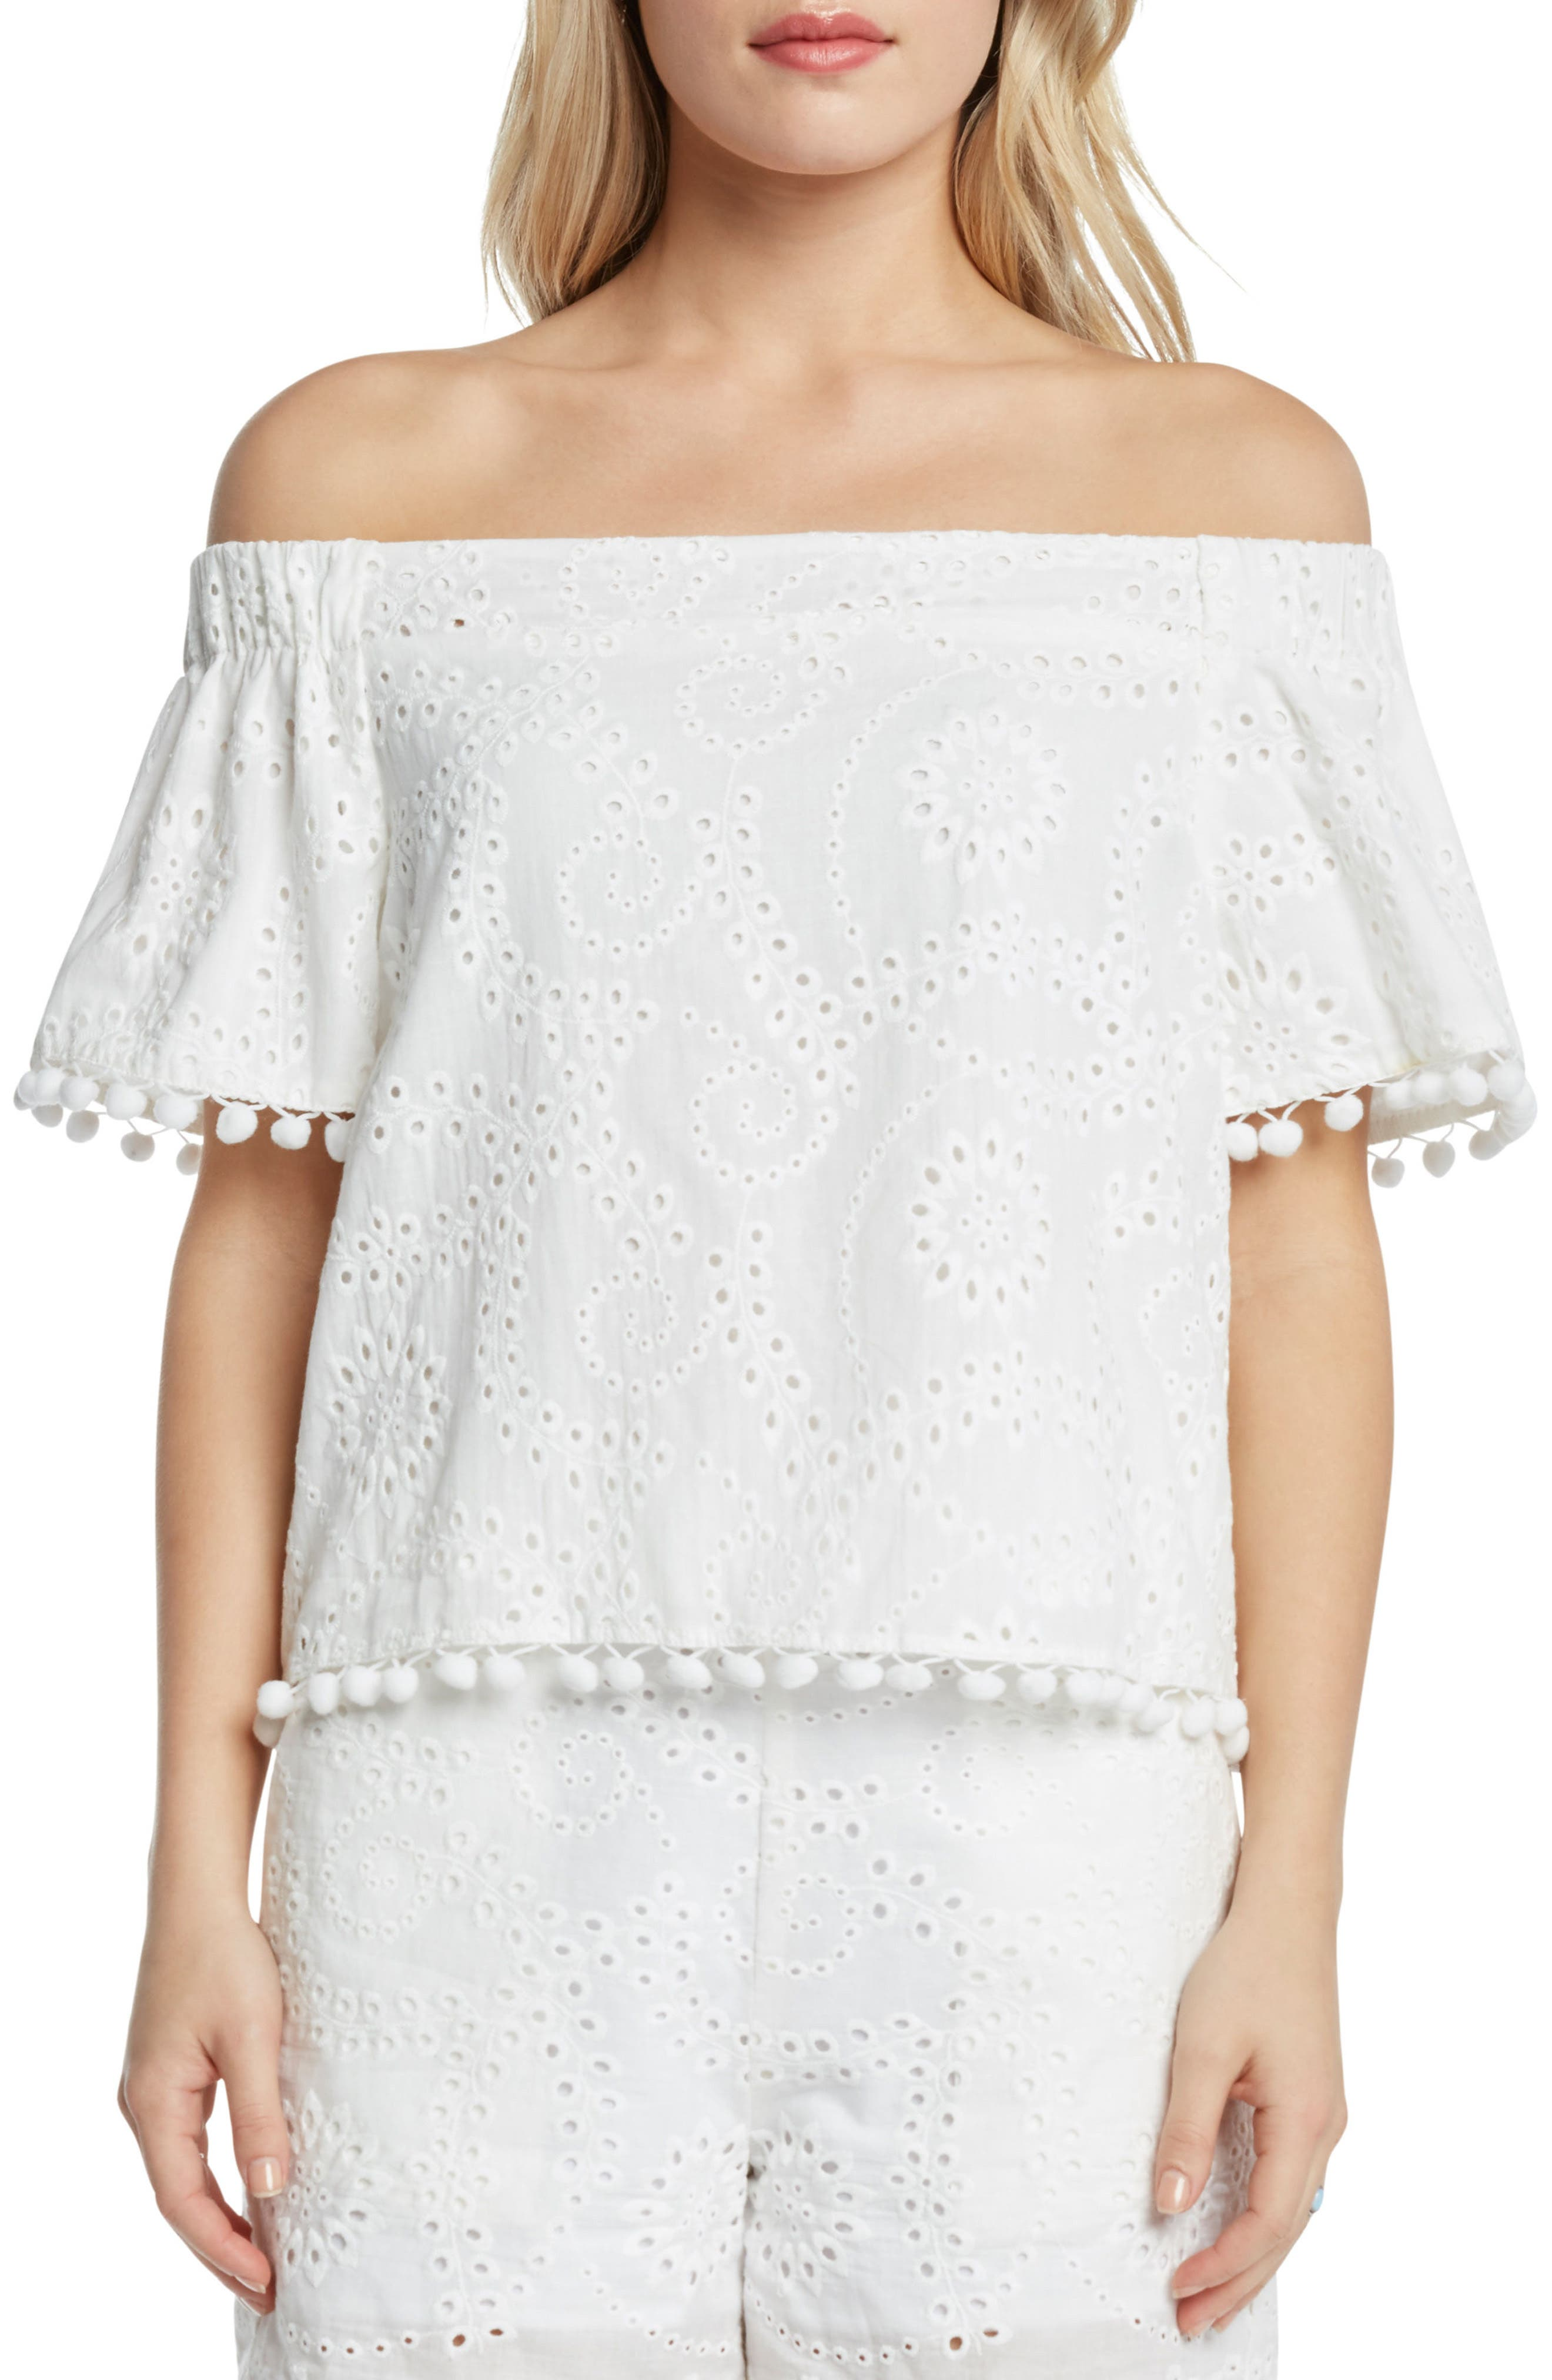 WILLOW & CLAY,                             Off the Shoulder Eyelet Top,                             Main thumbnail 1, color,                             106